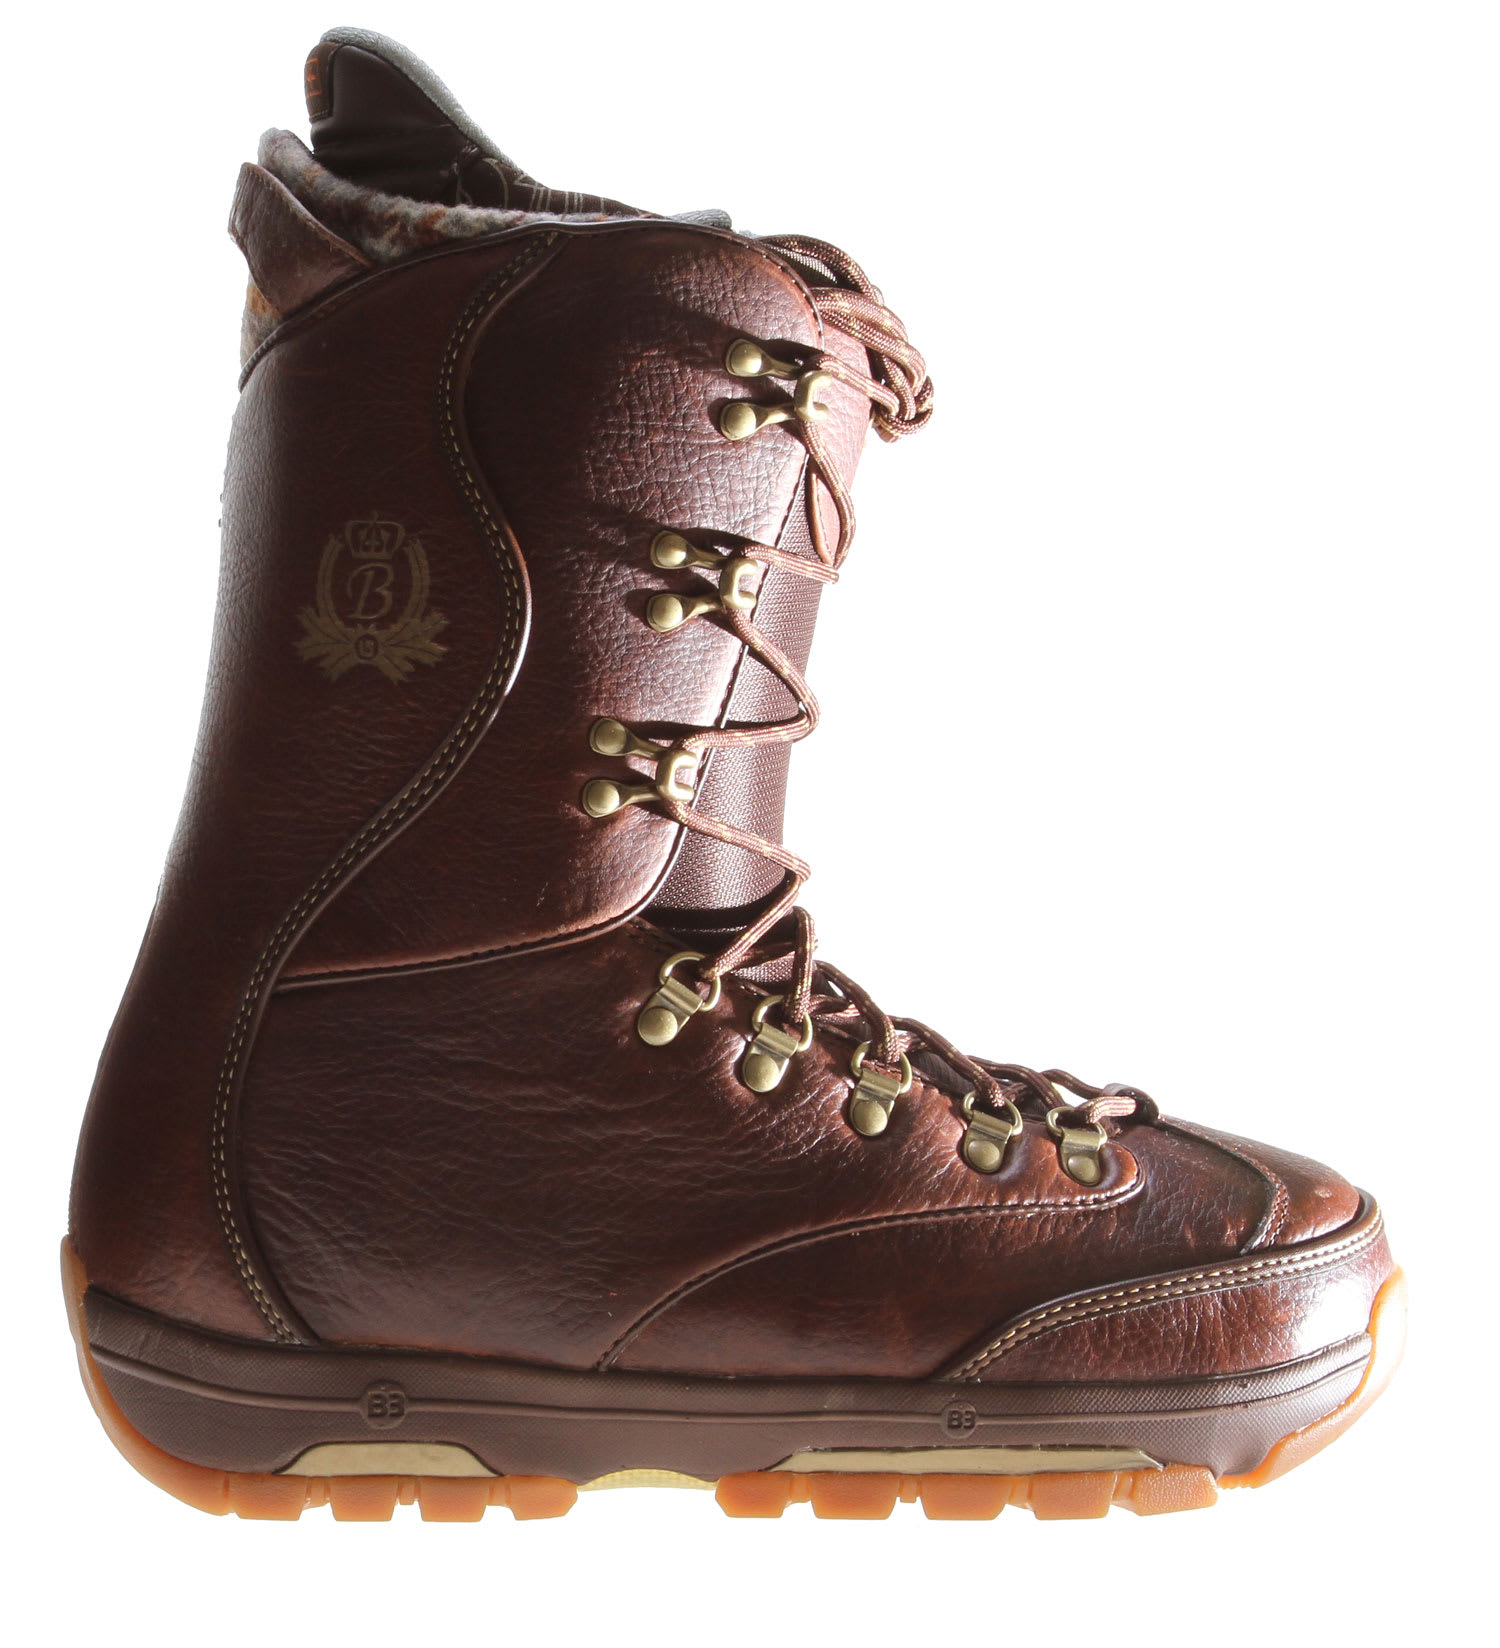 Shop for Burton XIII Snowboard Boots Decade/Brown - Men's